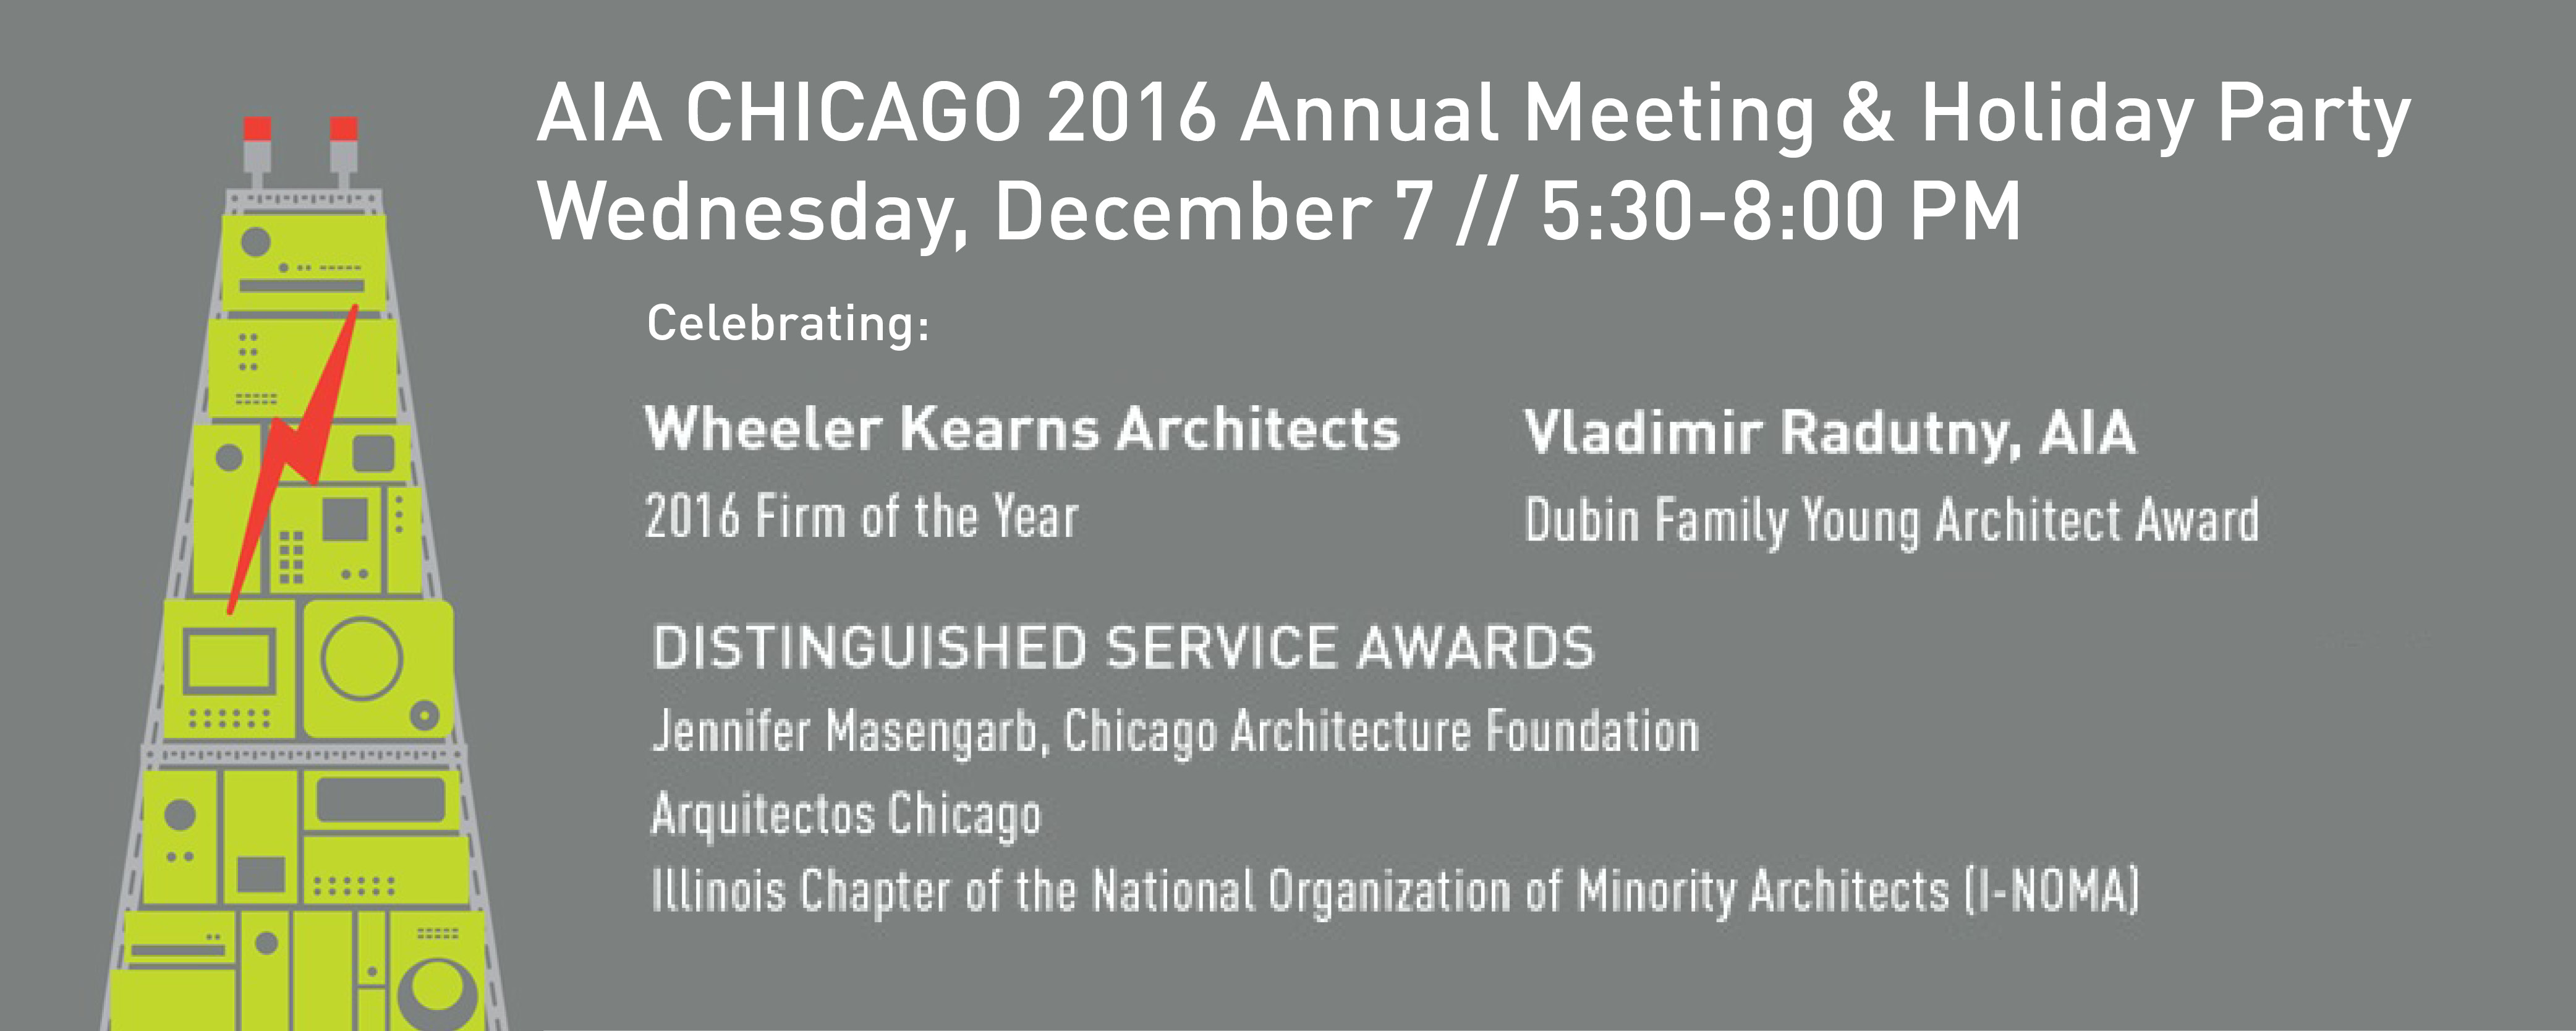 2016 Annual Meeting Holiday Party